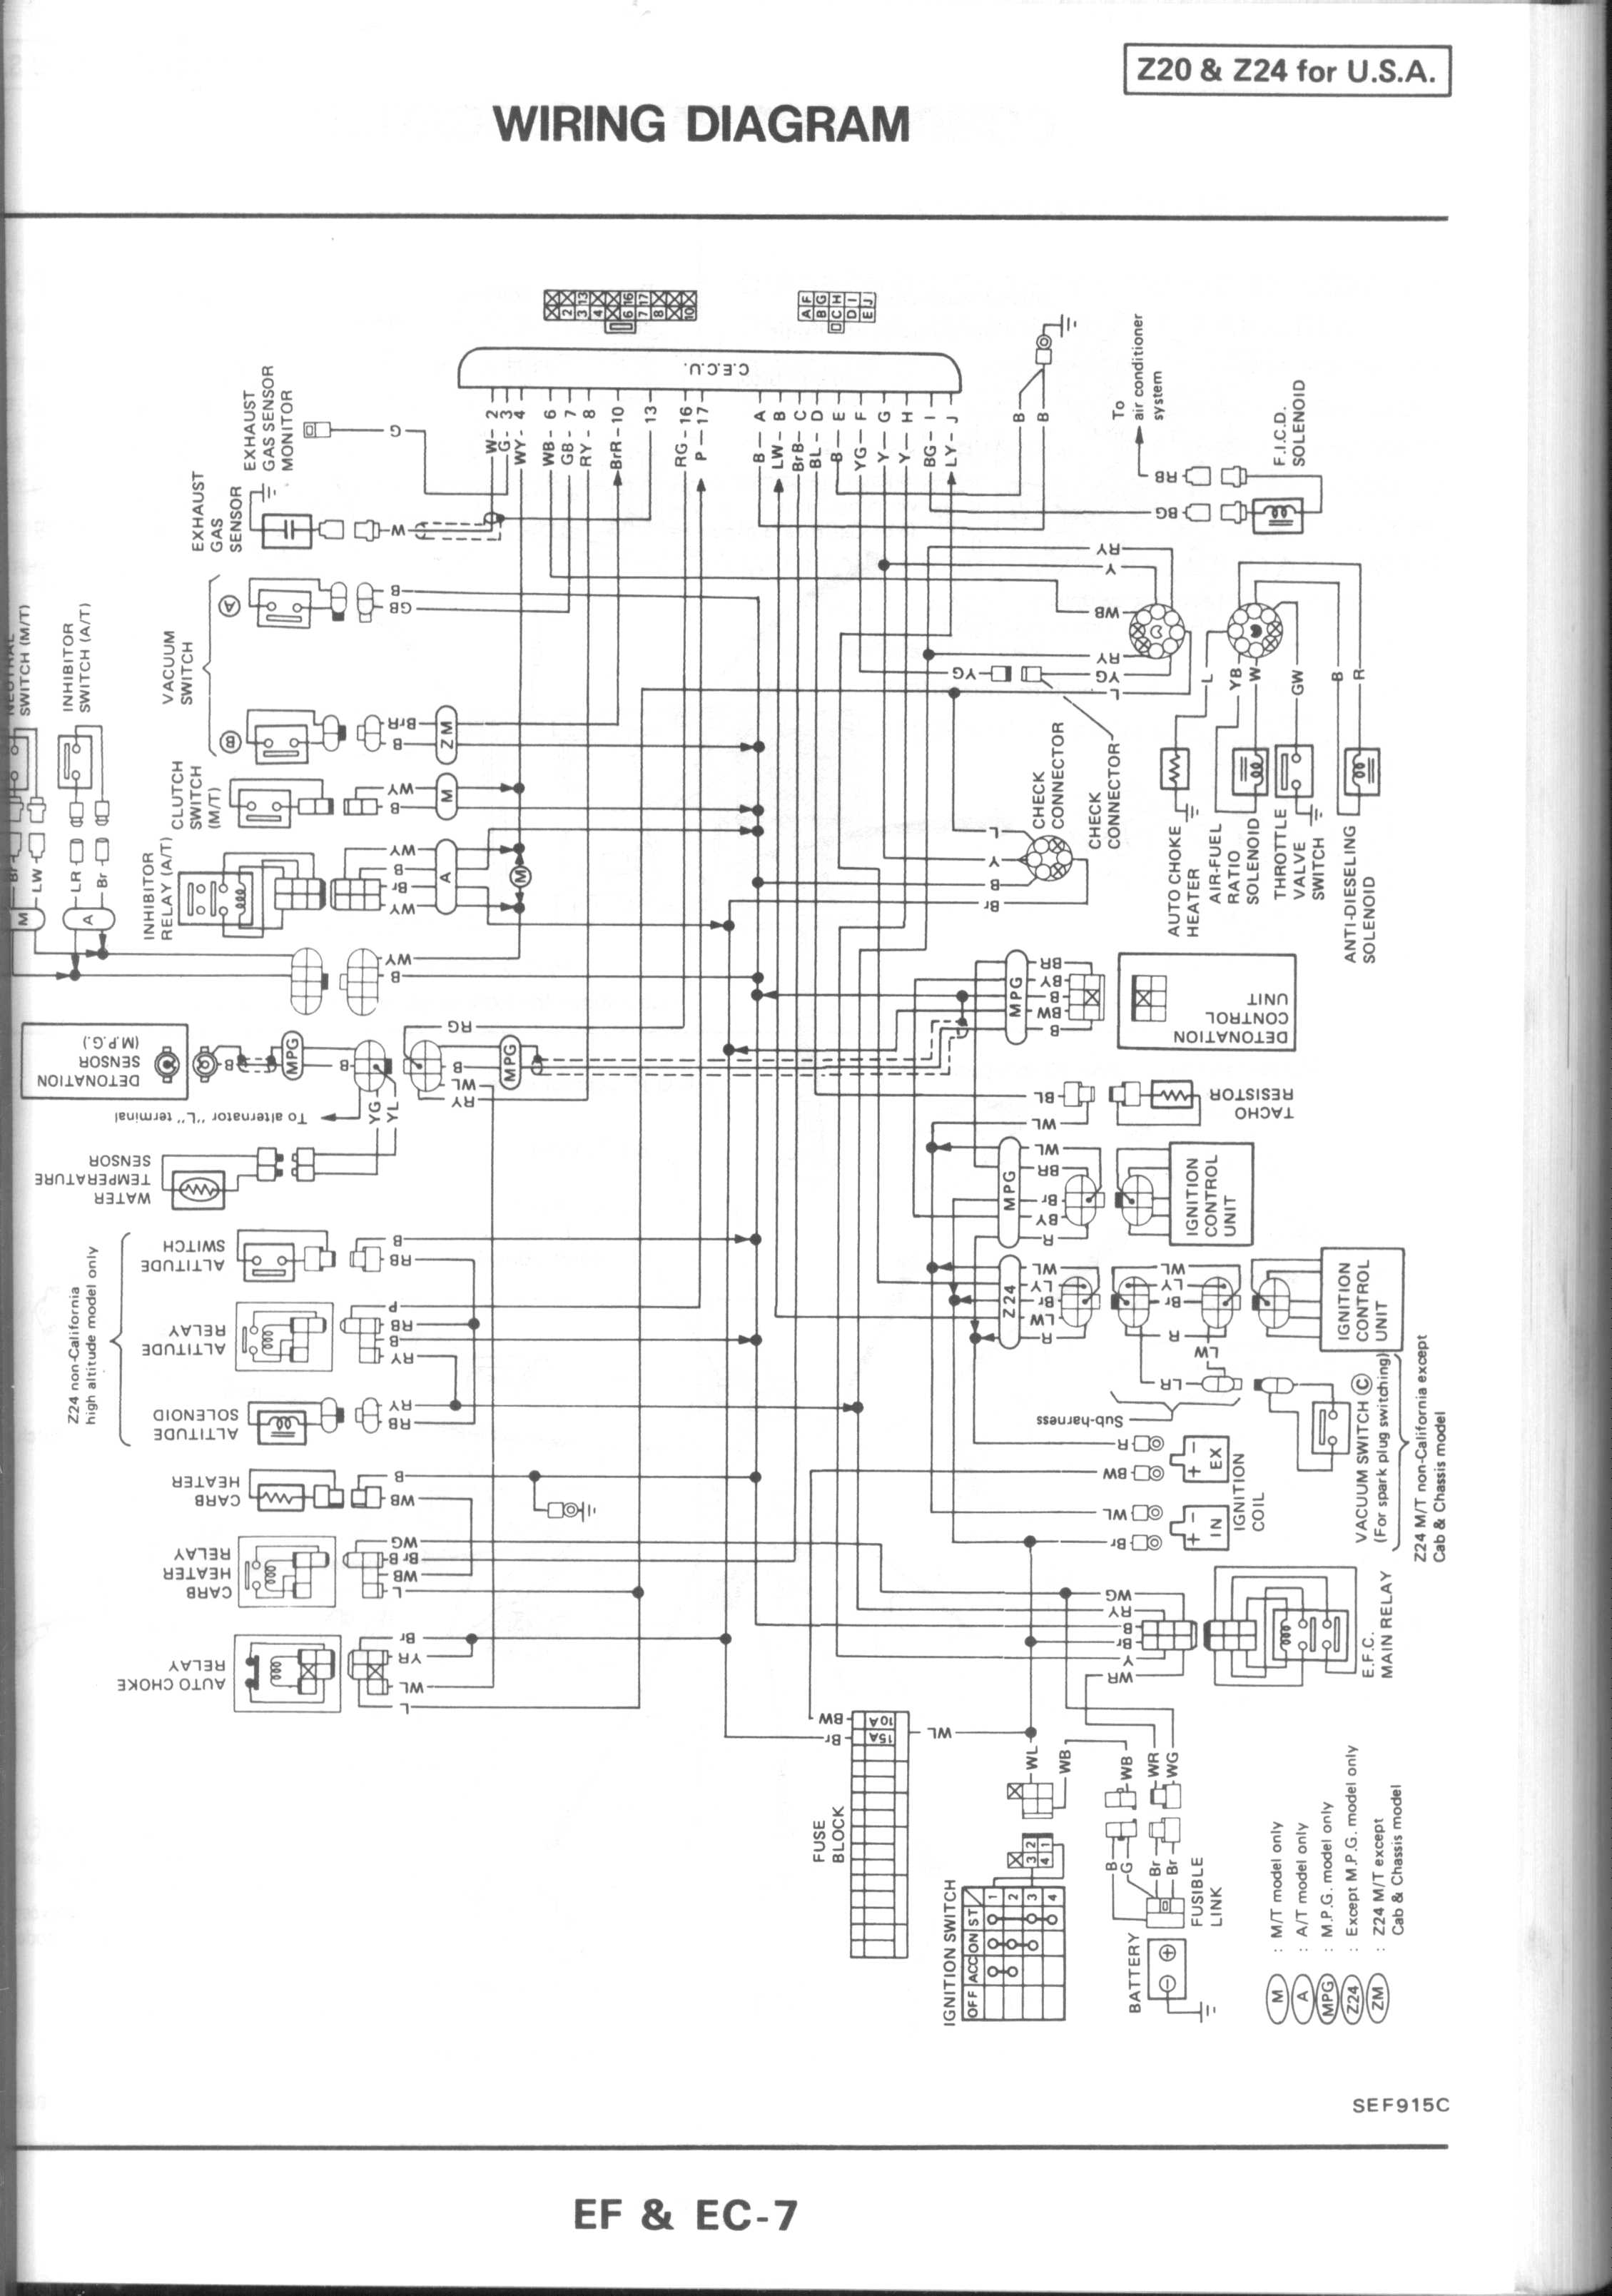 Nissan 3 4 Engine Diagram Books Of Wiring Library Motor 87 D21 Data Schema Rh Site De Joueurs Com